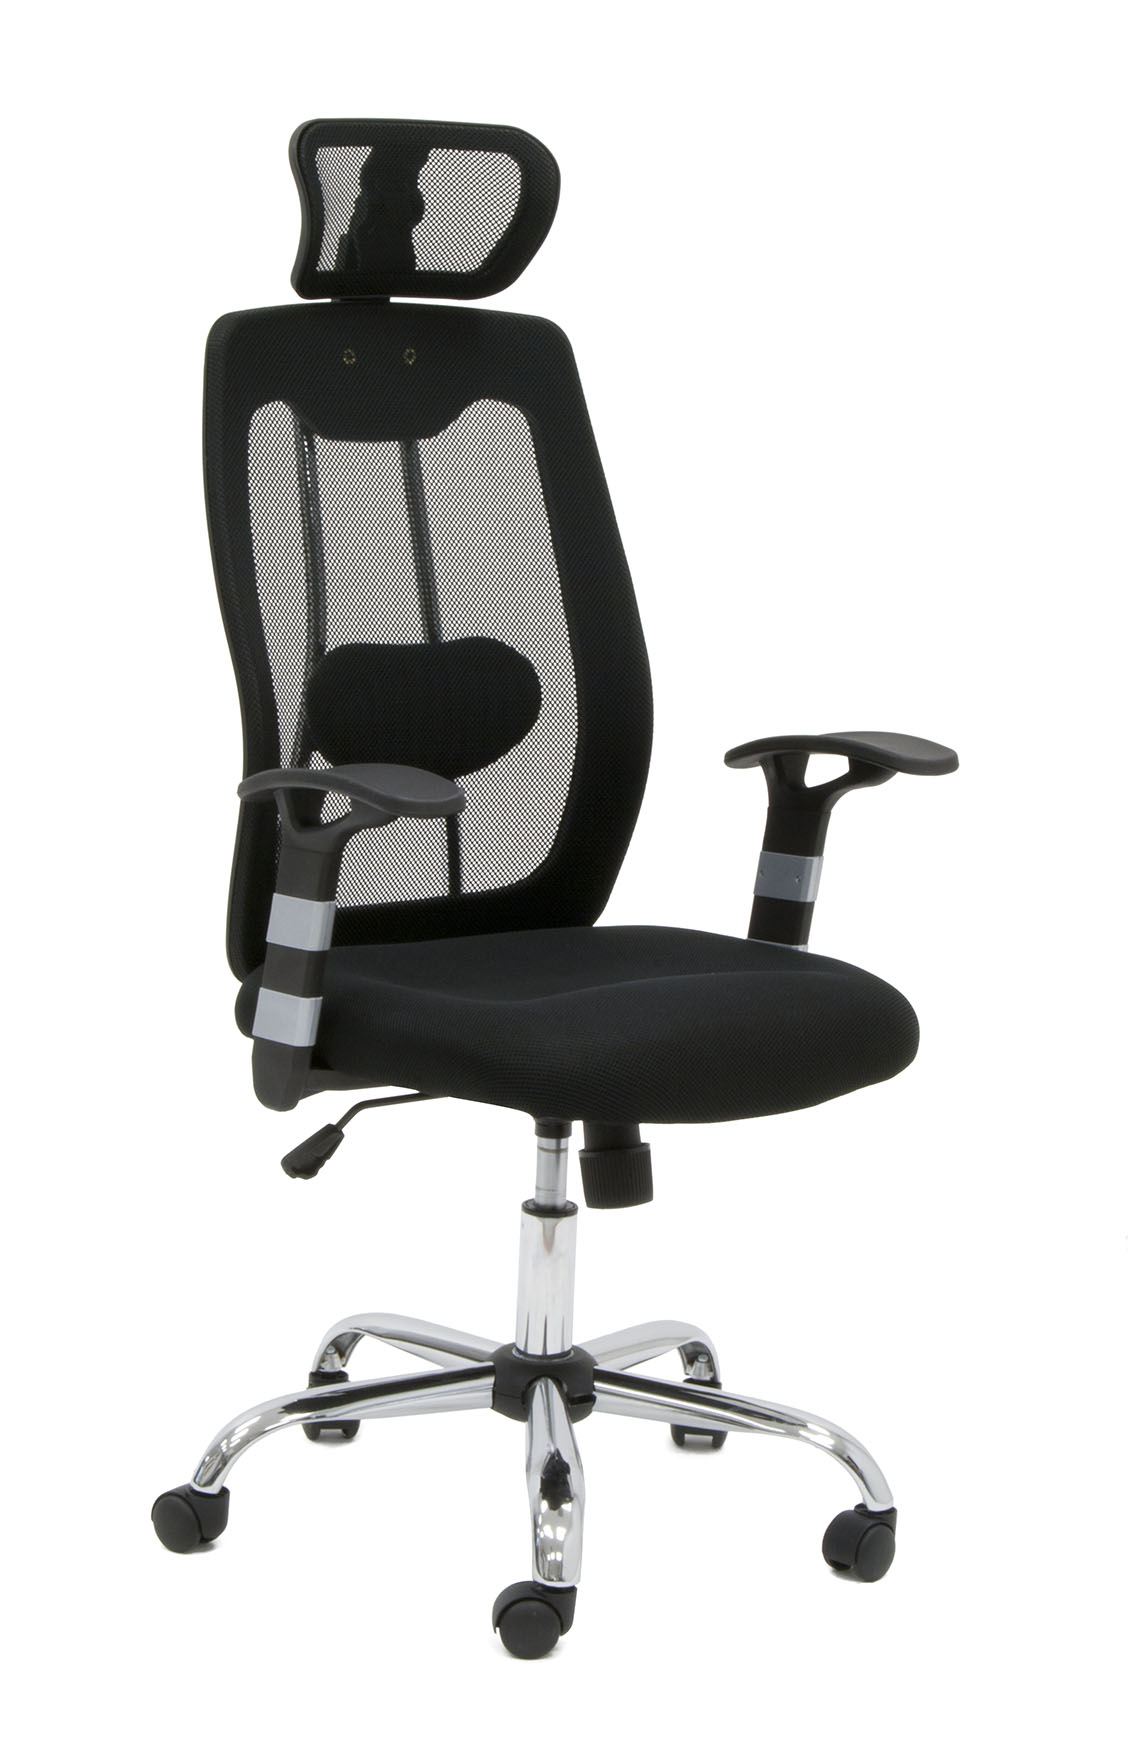 sc 1 st  Madison Art Shop & STUDIO DESIGNS Contour Chair / Black